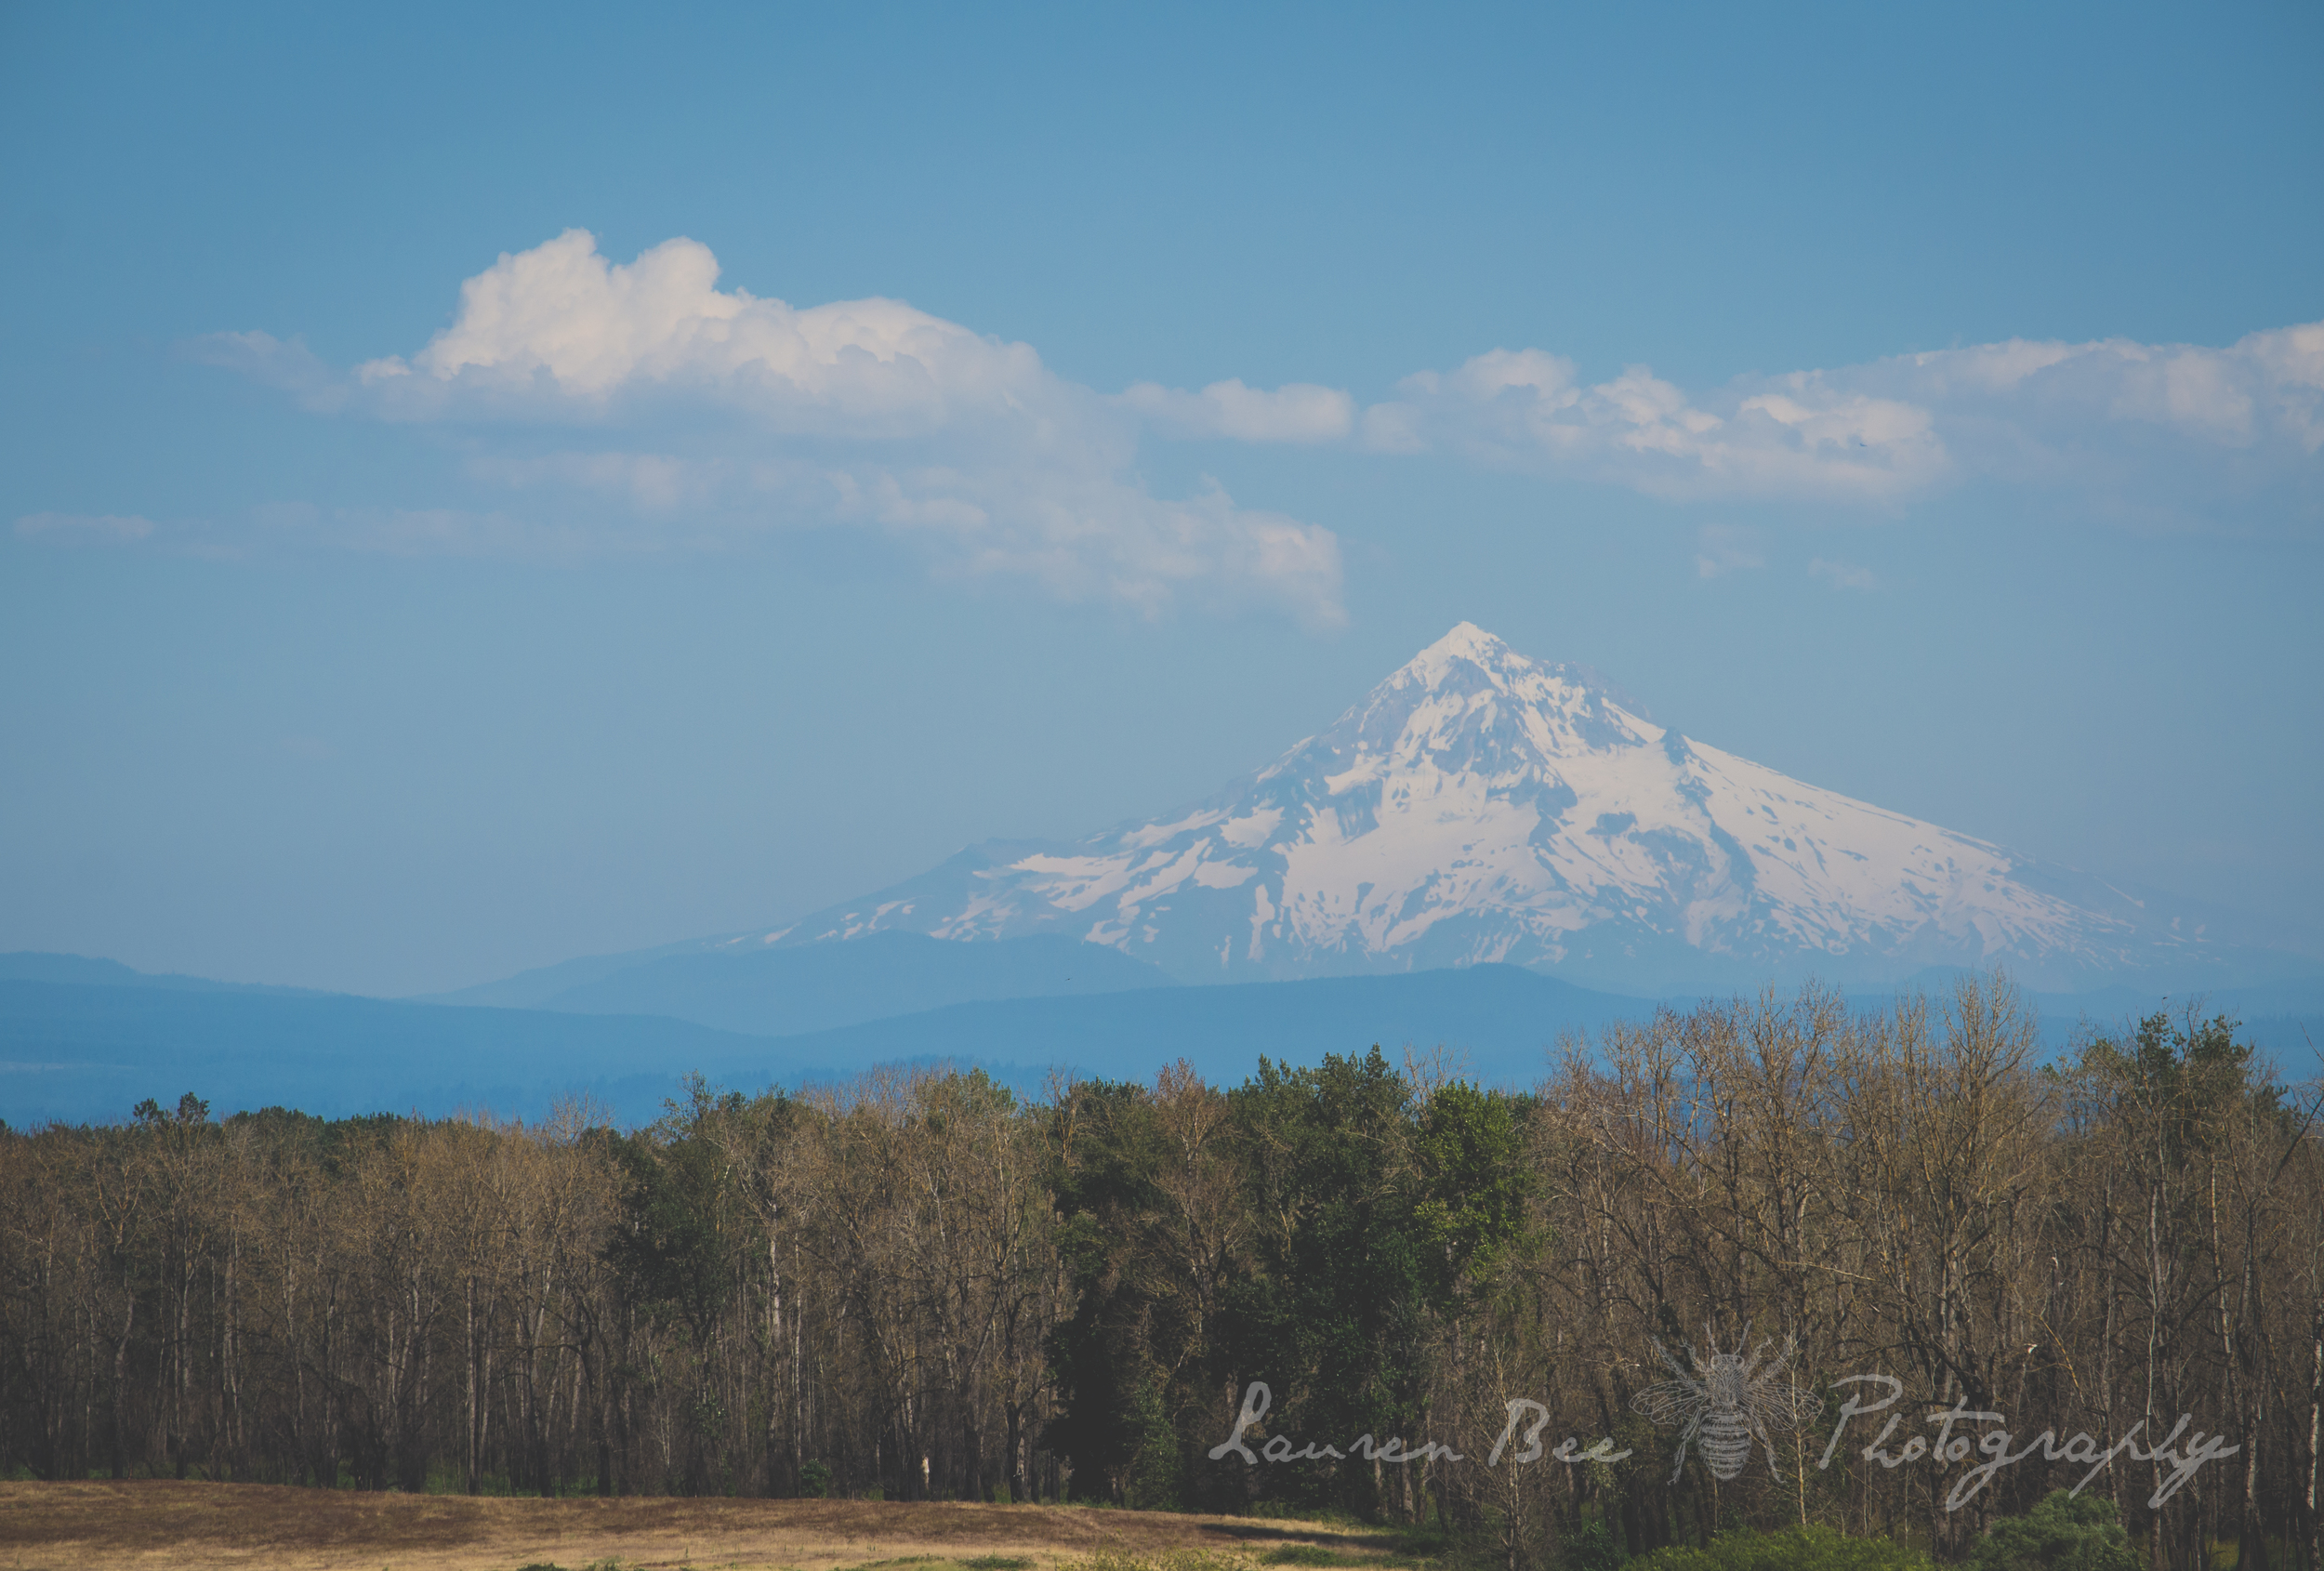 Mt. Hood, proud sentinel over the Columbia River, Portland Oregon, and Vancouver Washington